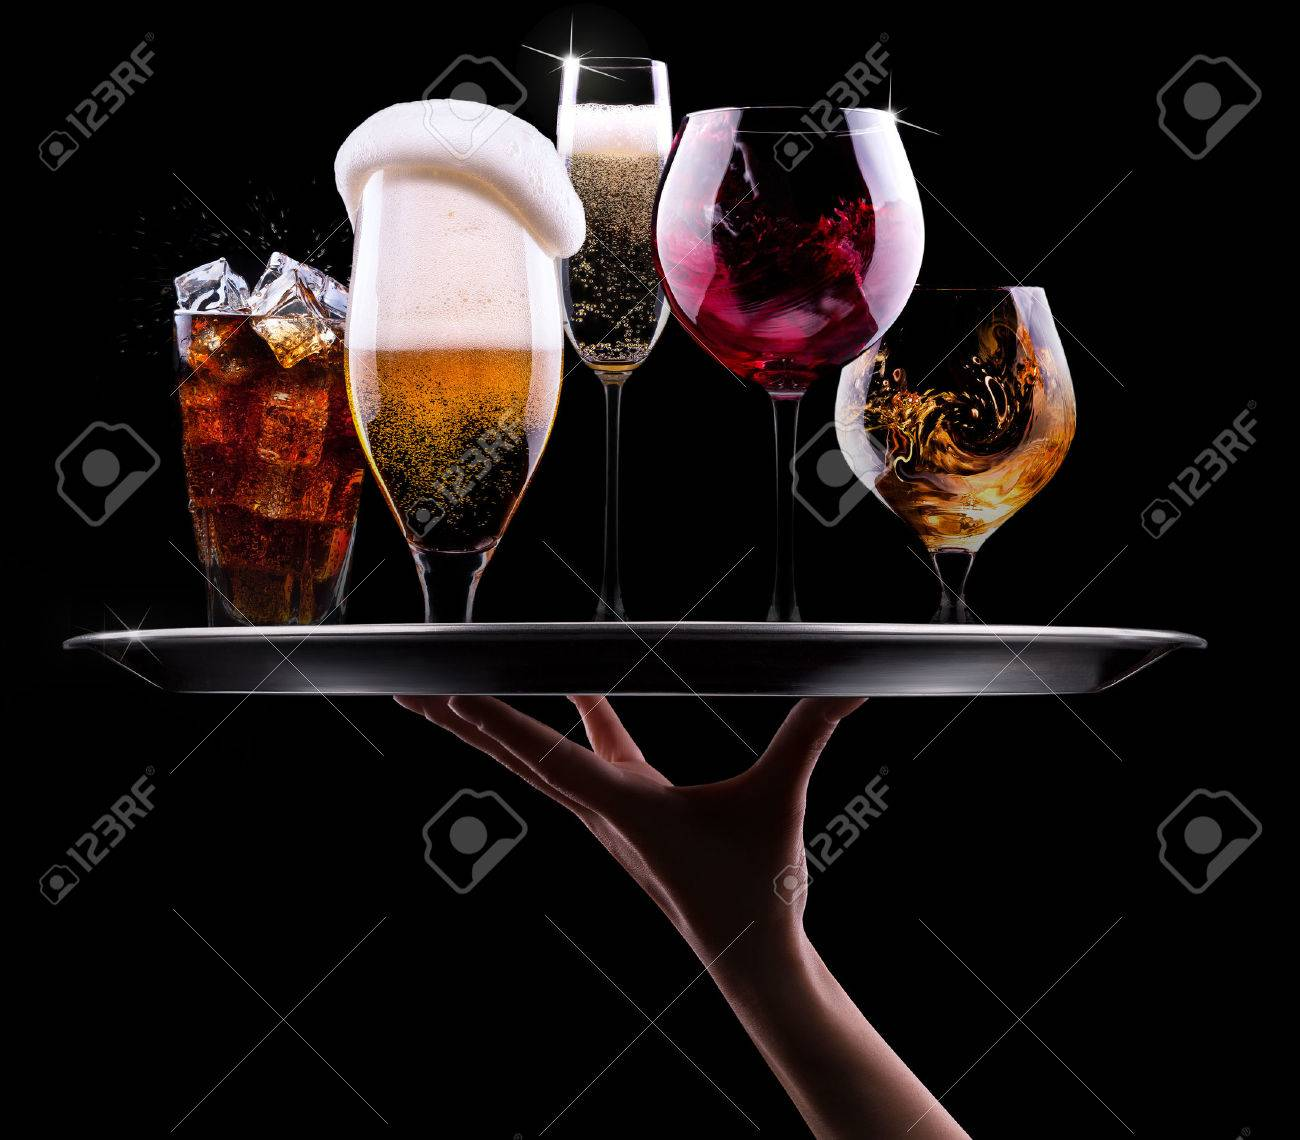 http://previews.123rf.com/images/boule13/boule131312/boule13131200129/24266182-tray-with-different-drinks-on-black-background-champagne-beer--Stock-Photo.jpg